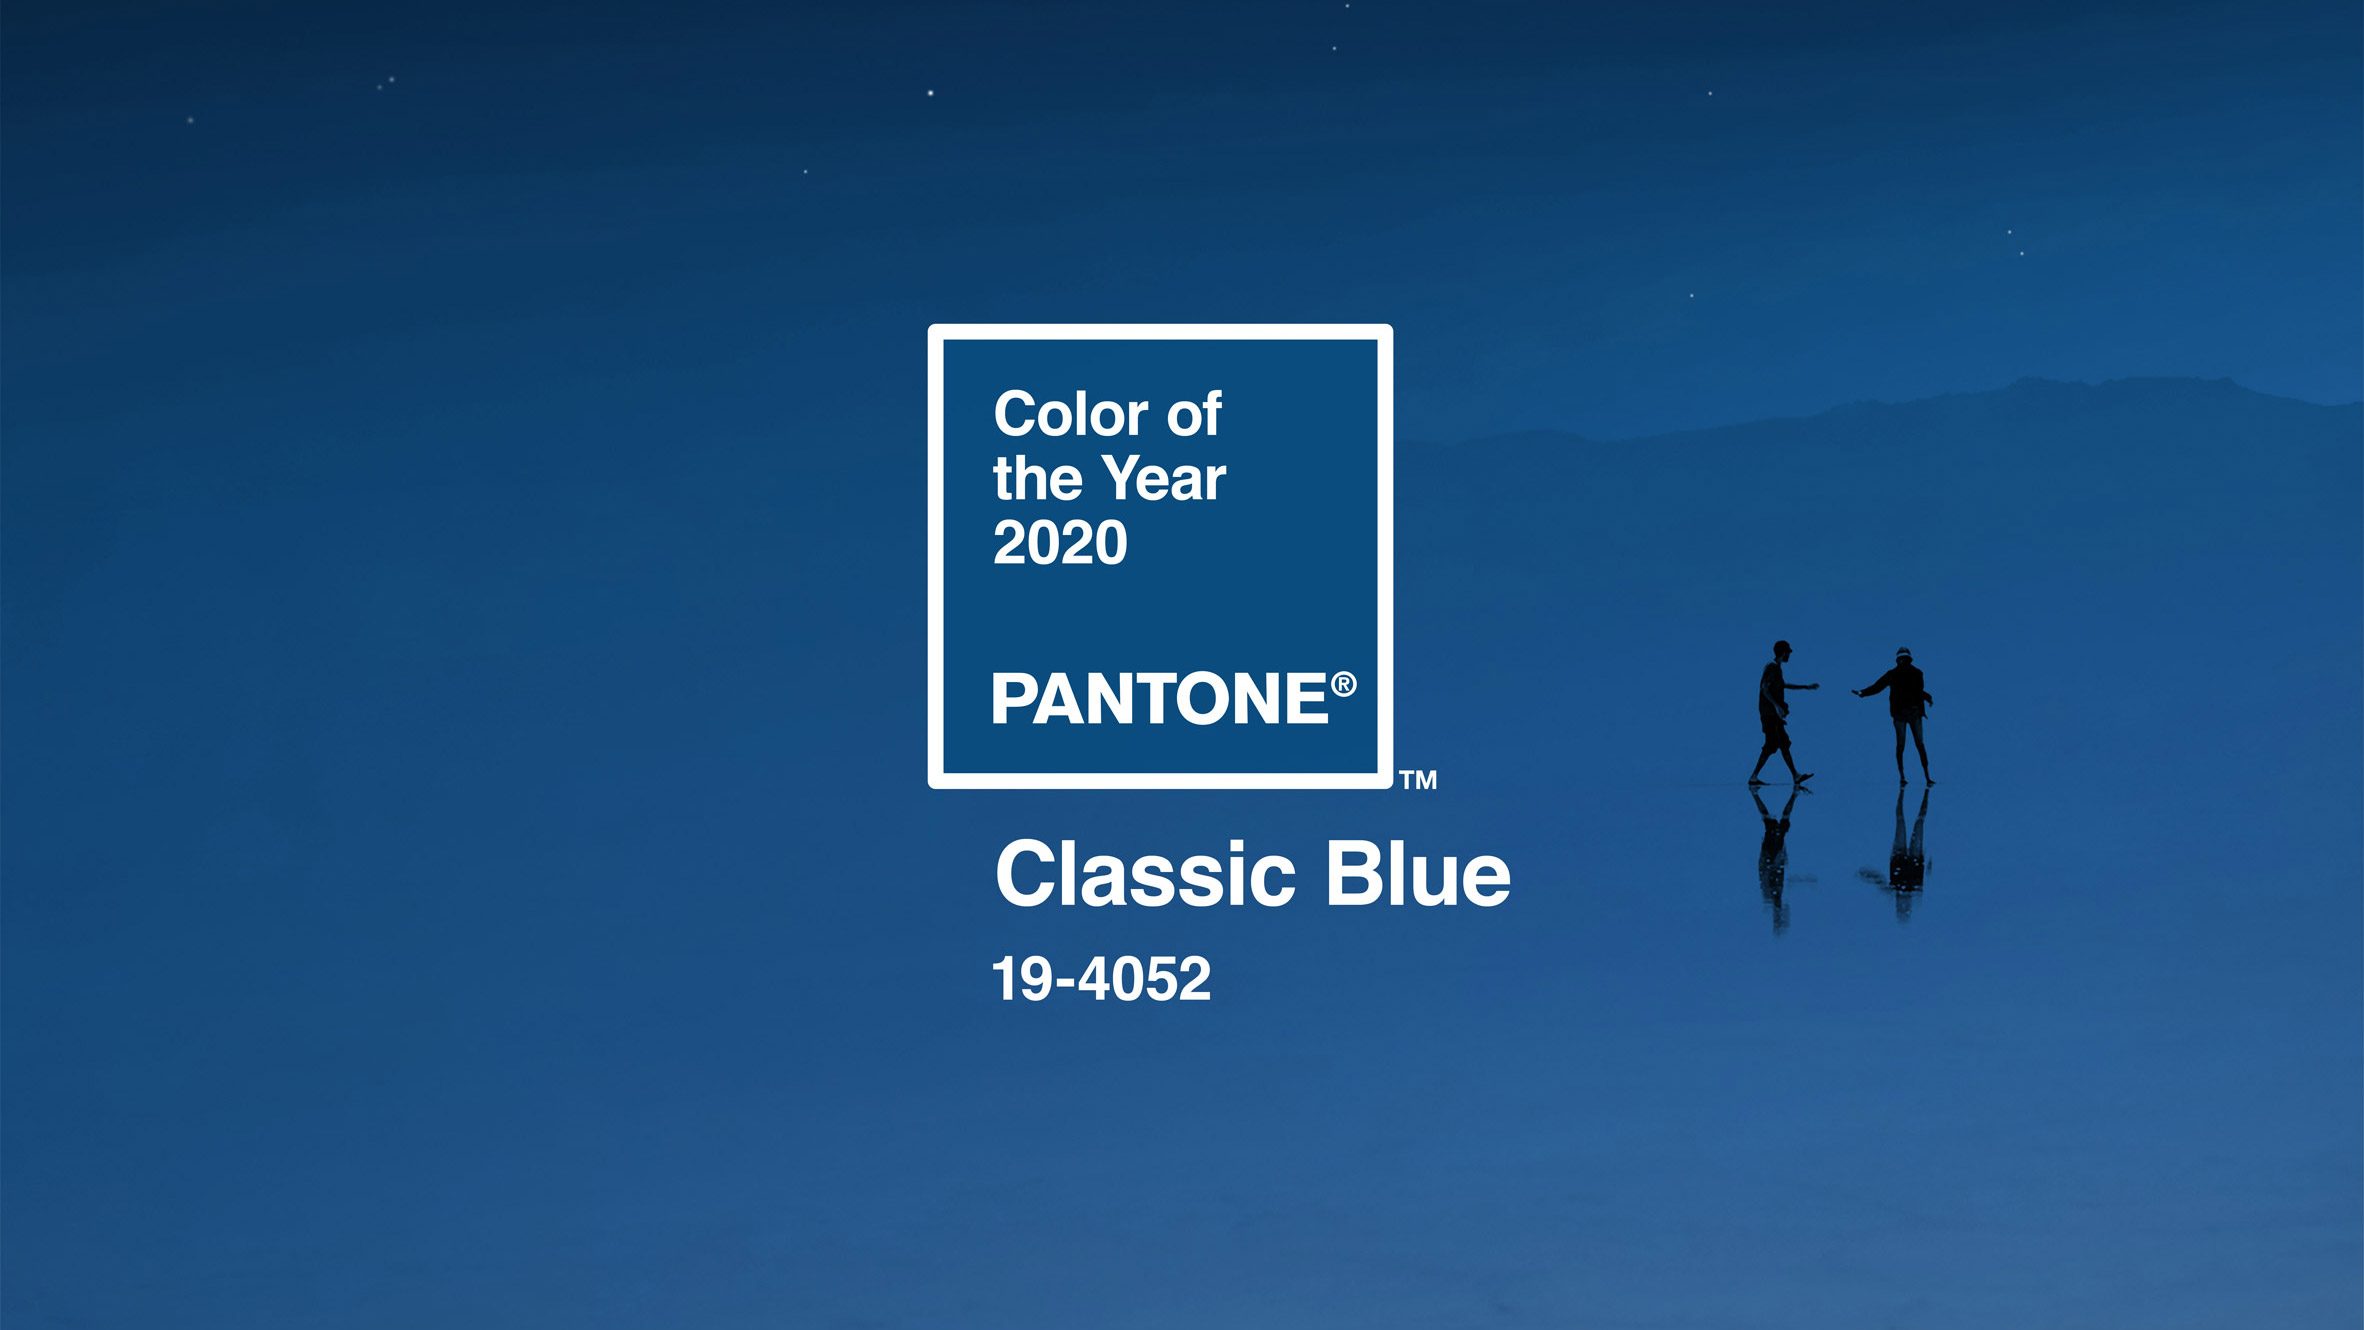 Classic Blue Is Pantones Colour Of The Year For 2020